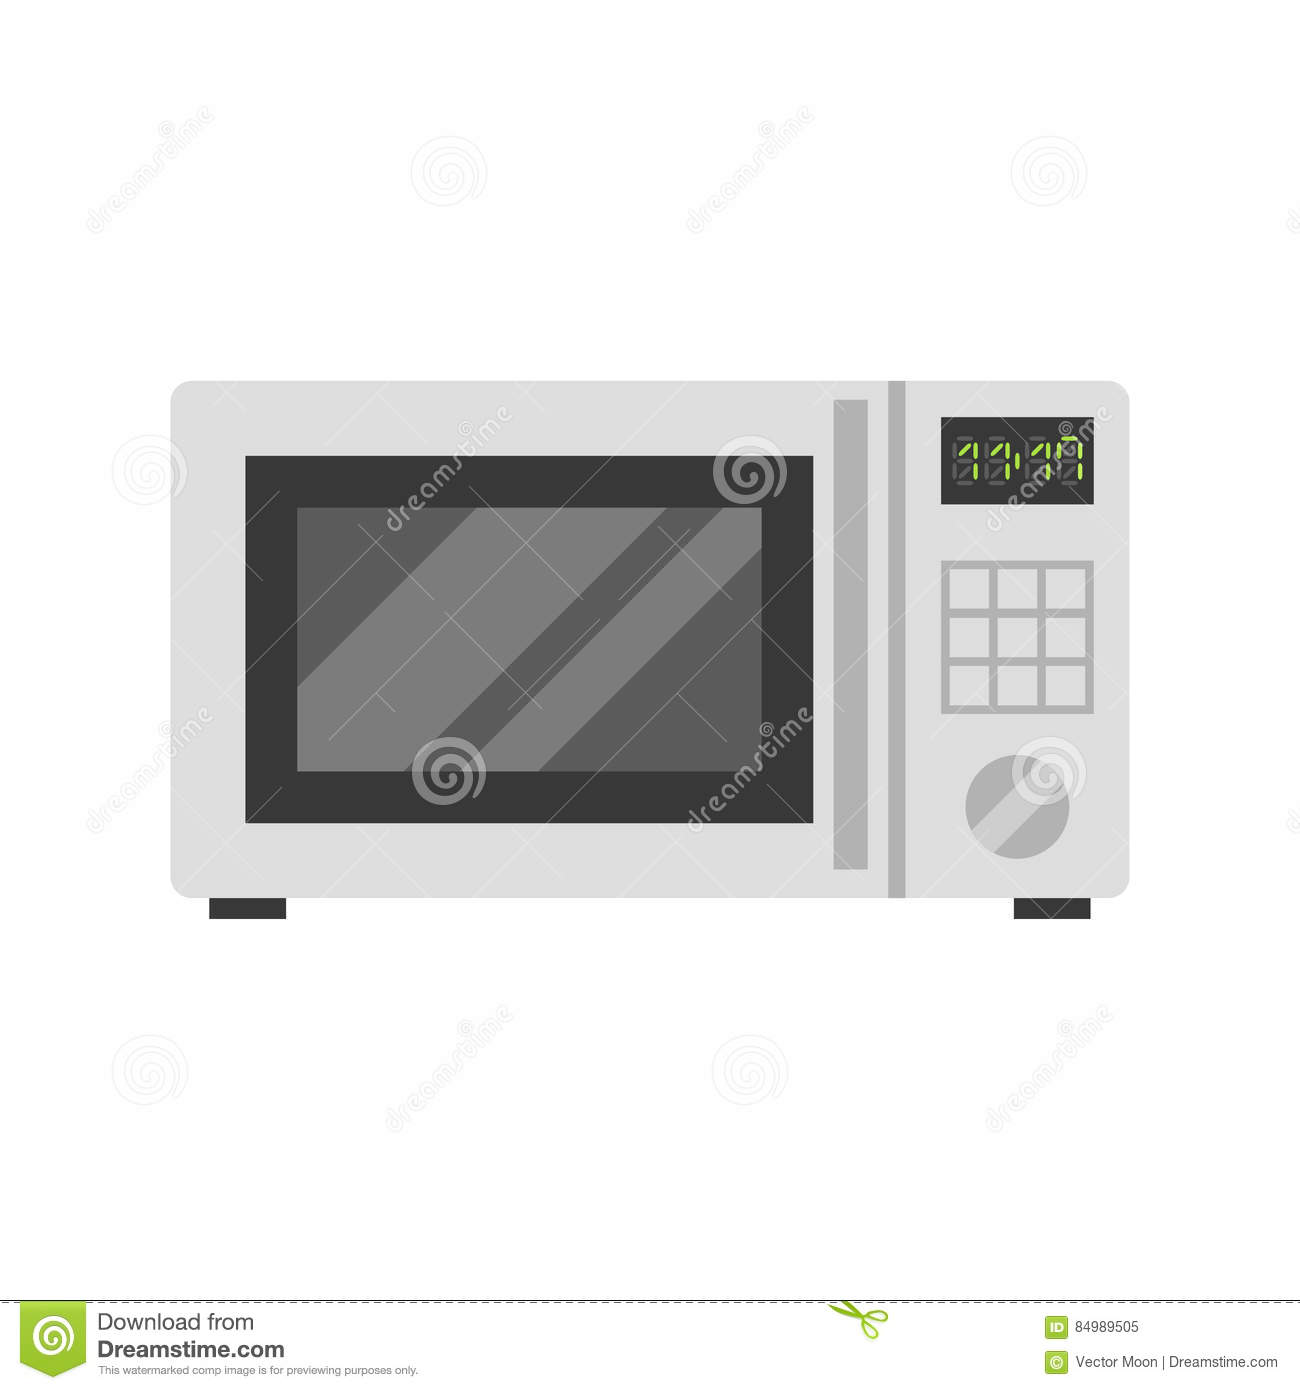 Microwave Oven Vector Illustration. Stock Vector - Illustration of ...